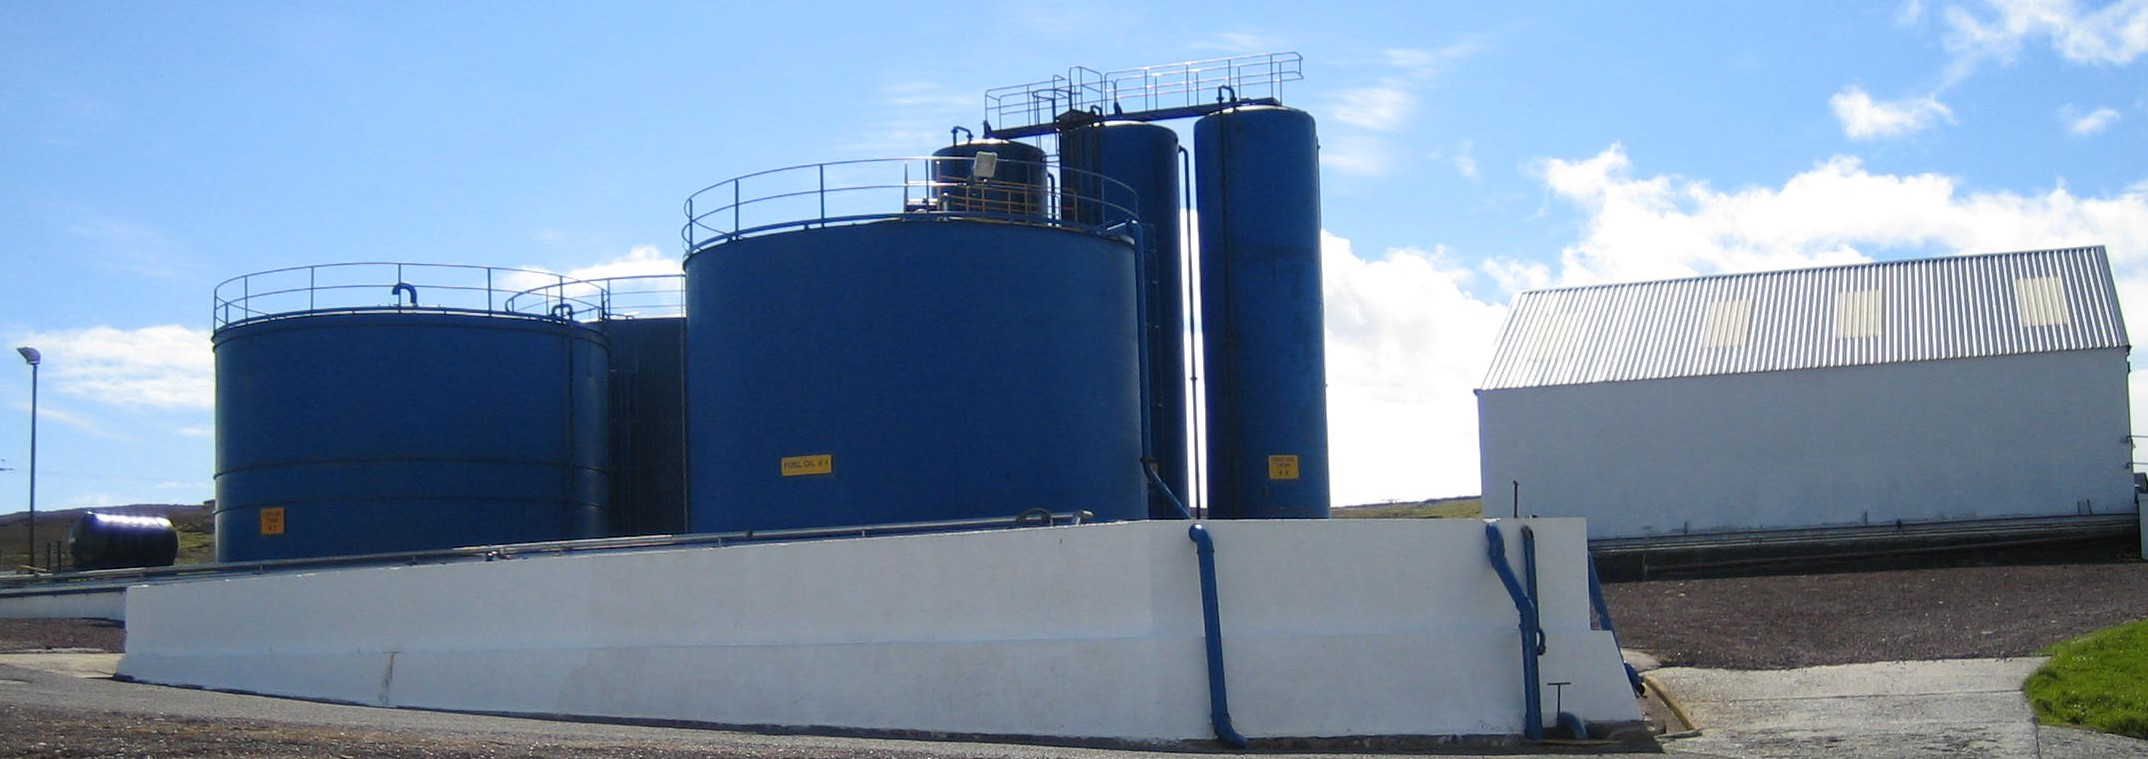 fuel_-_fish_oil_storeage_tanks_and_bund-1-2